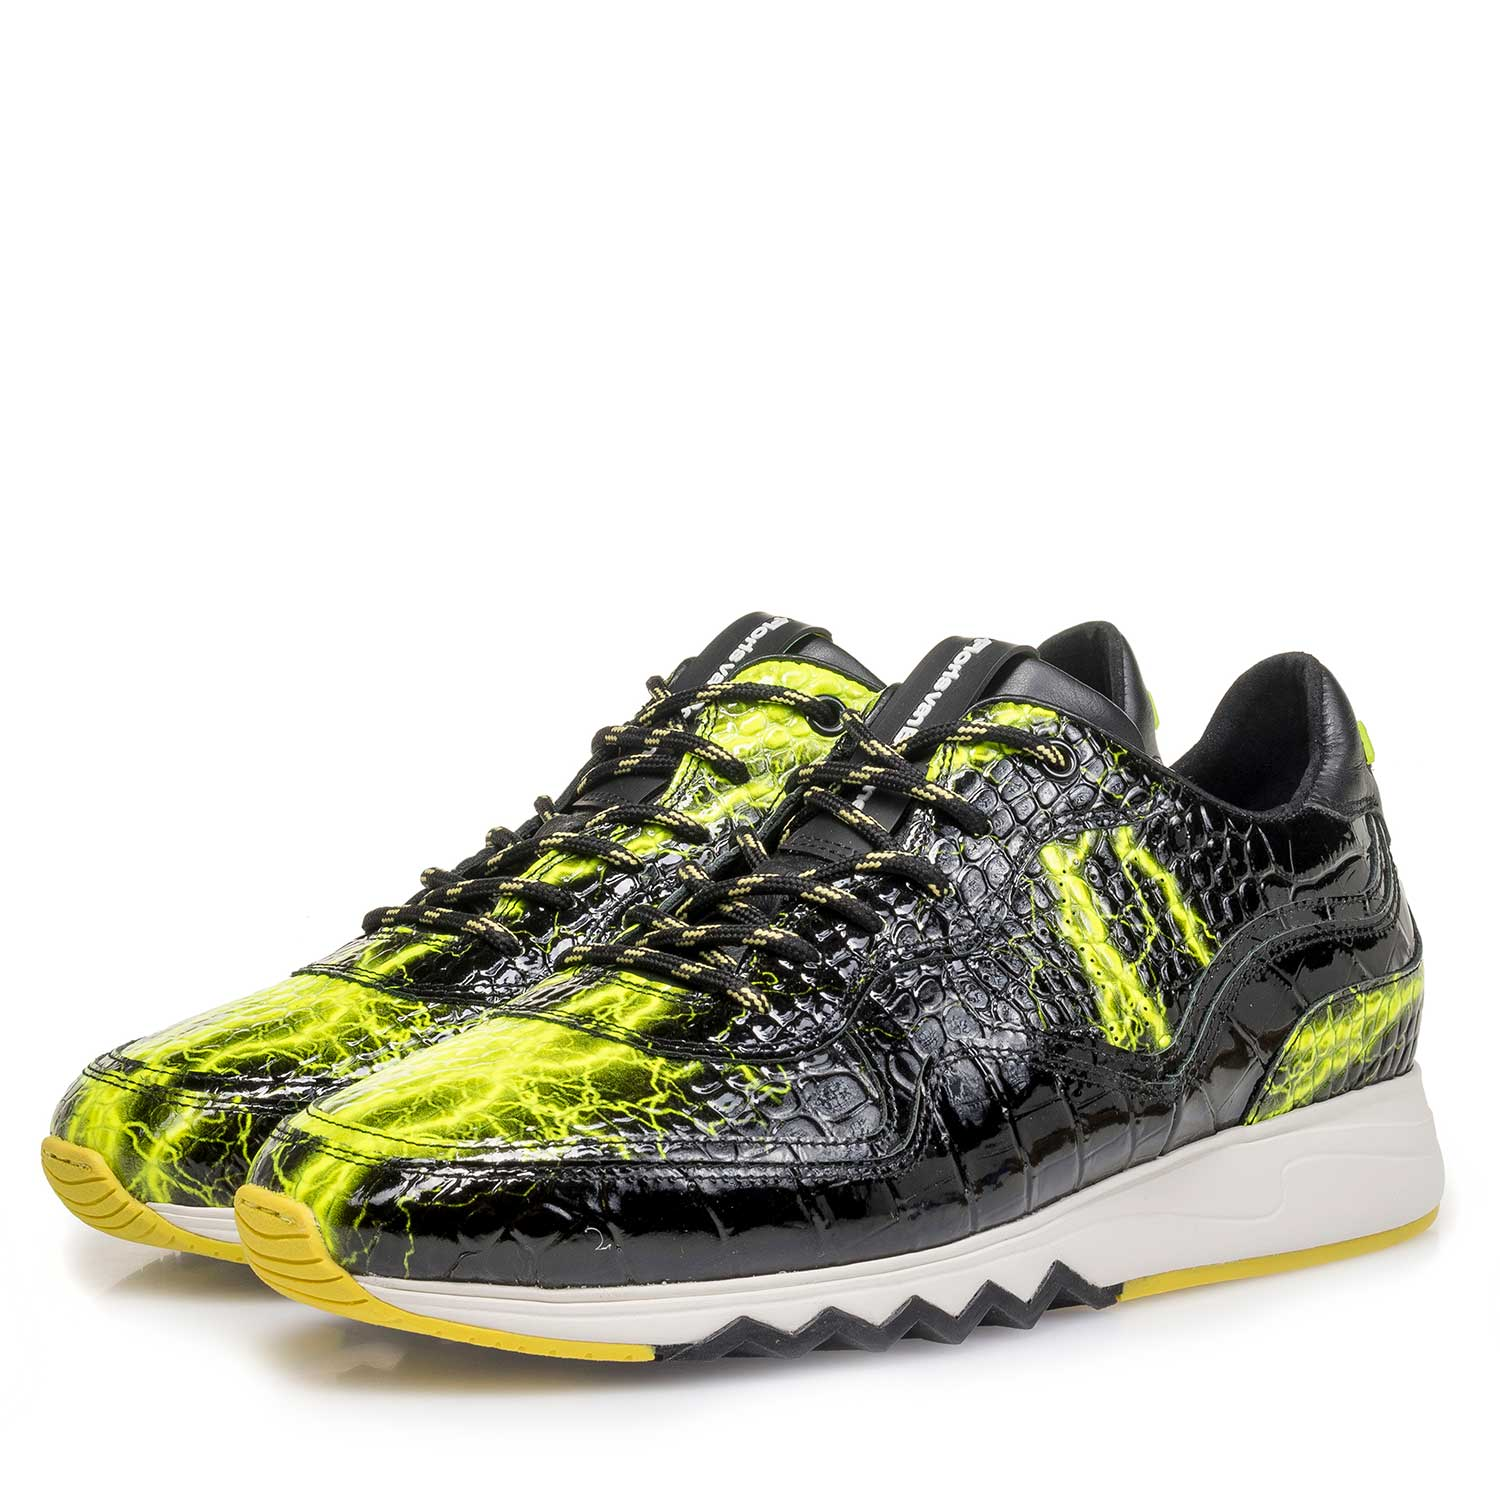 16296/01 - Black patent leather sneaker with yellow print